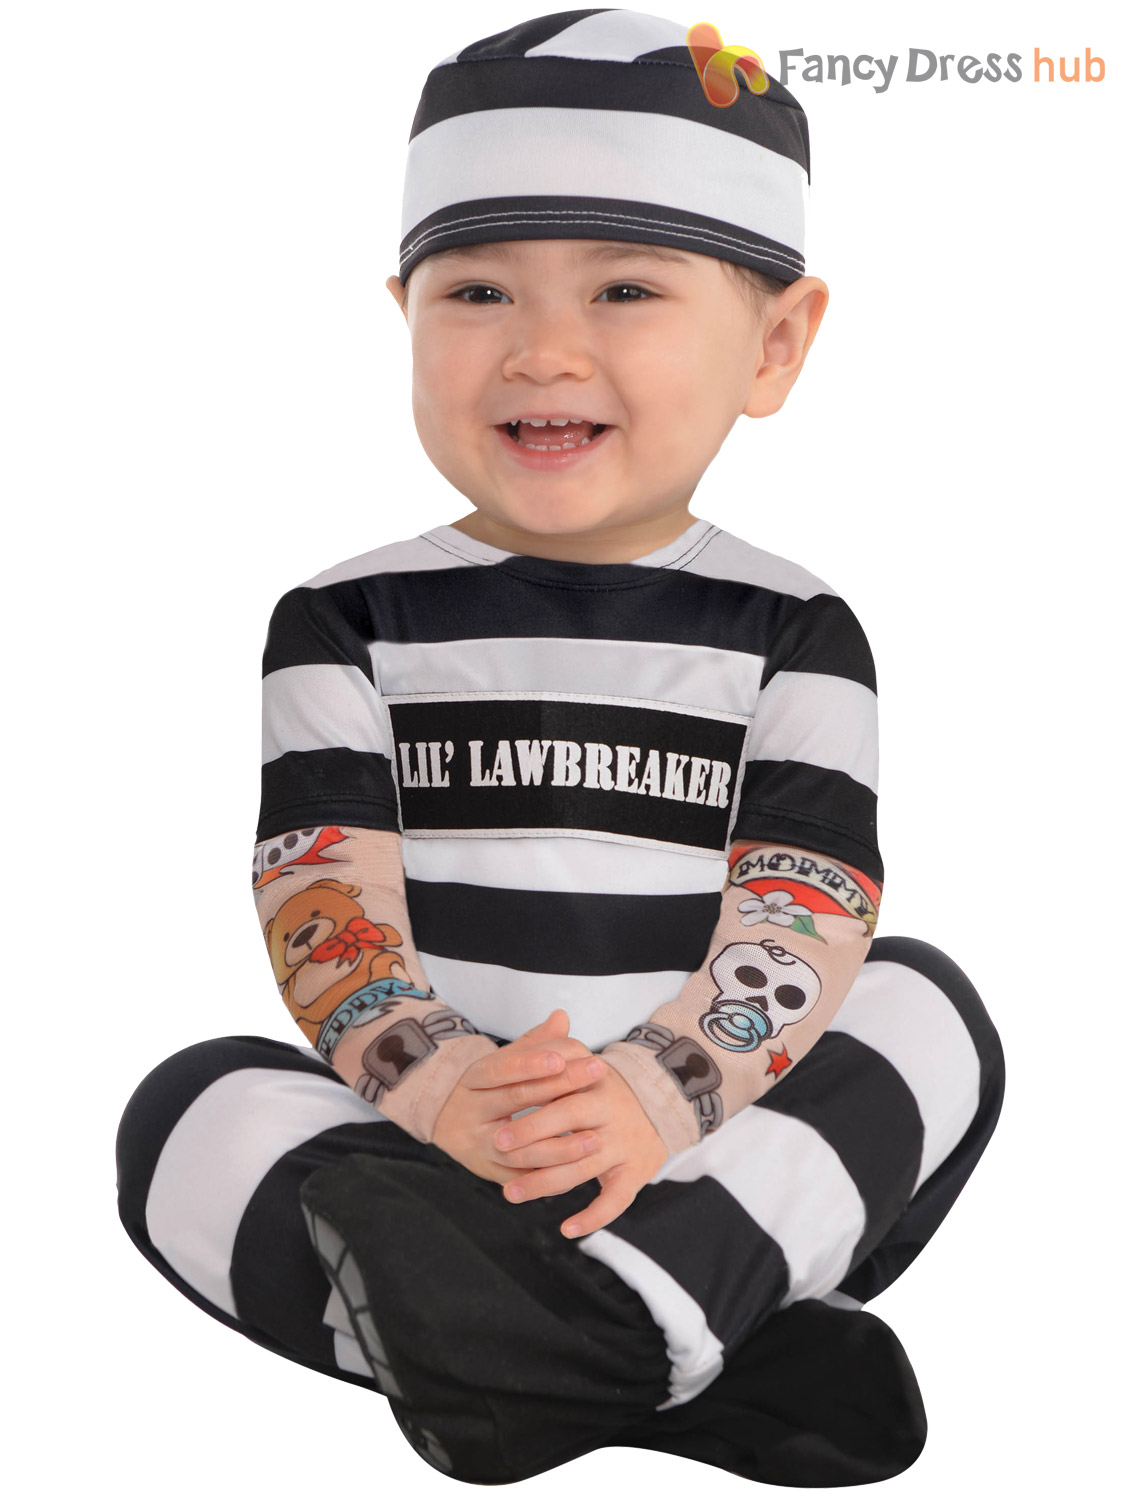 Baby-Toddler-Halloween-Fancy-Dress-Prisoner-Costume-Boy-  sc 1 st  eBay & Baby Toddler Halloween Fancy Dress Prisoner Costume Boy Infant ...